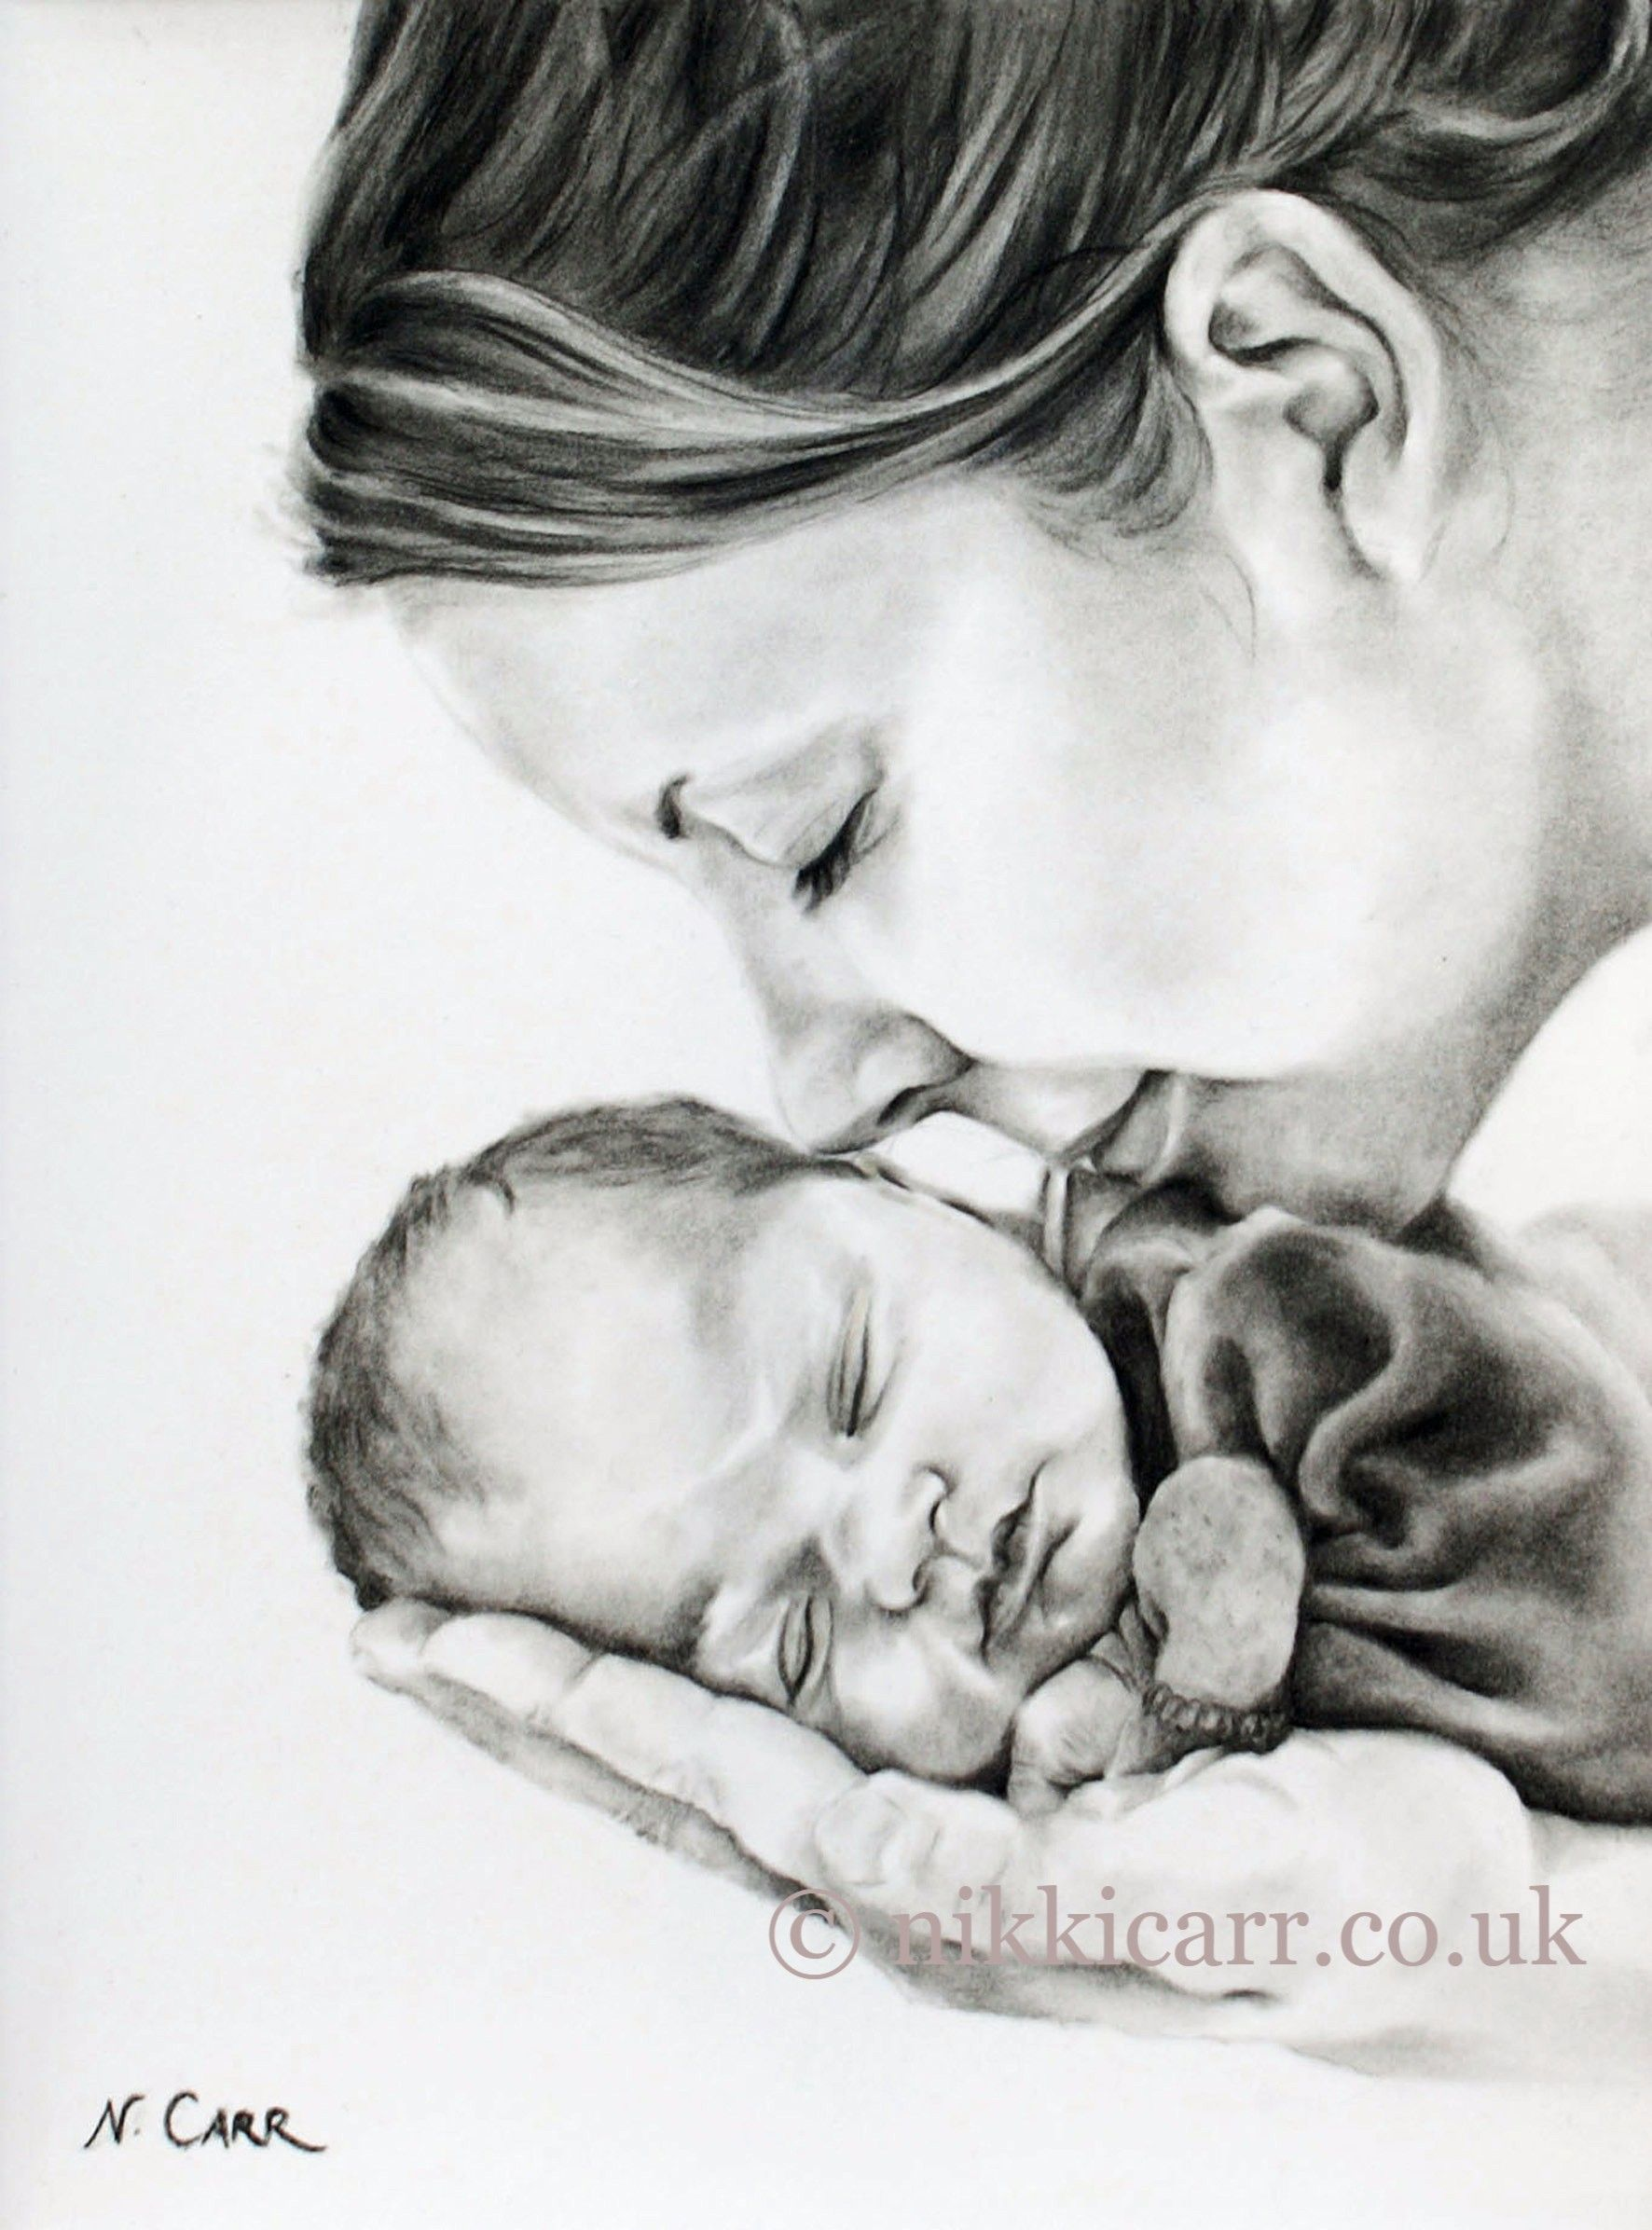 Limited edition print of original charcoal drawing of a